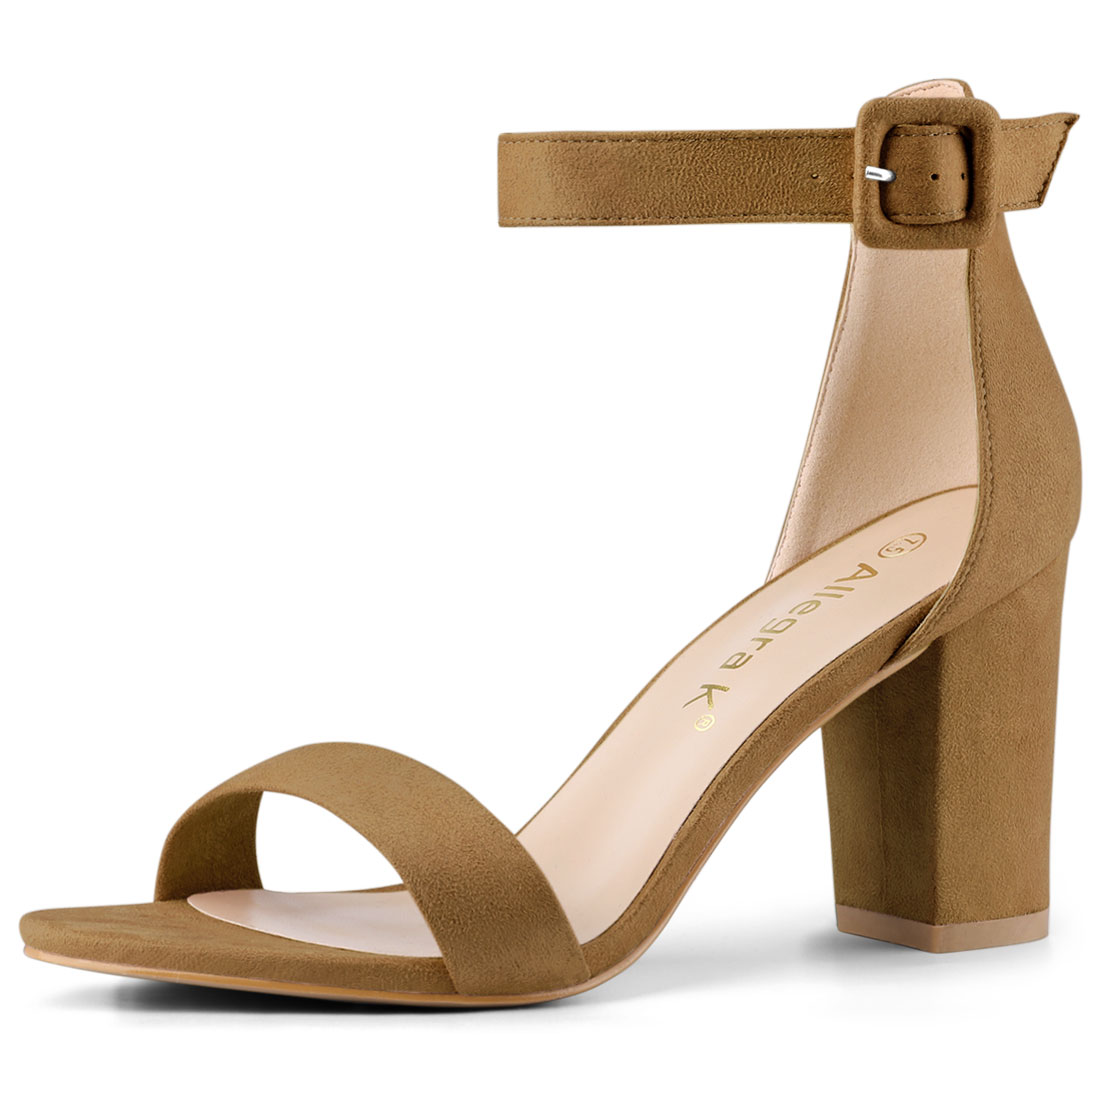 Woman Open Toe Chunky High Heel Ankle Strap Sandals Camel US 10